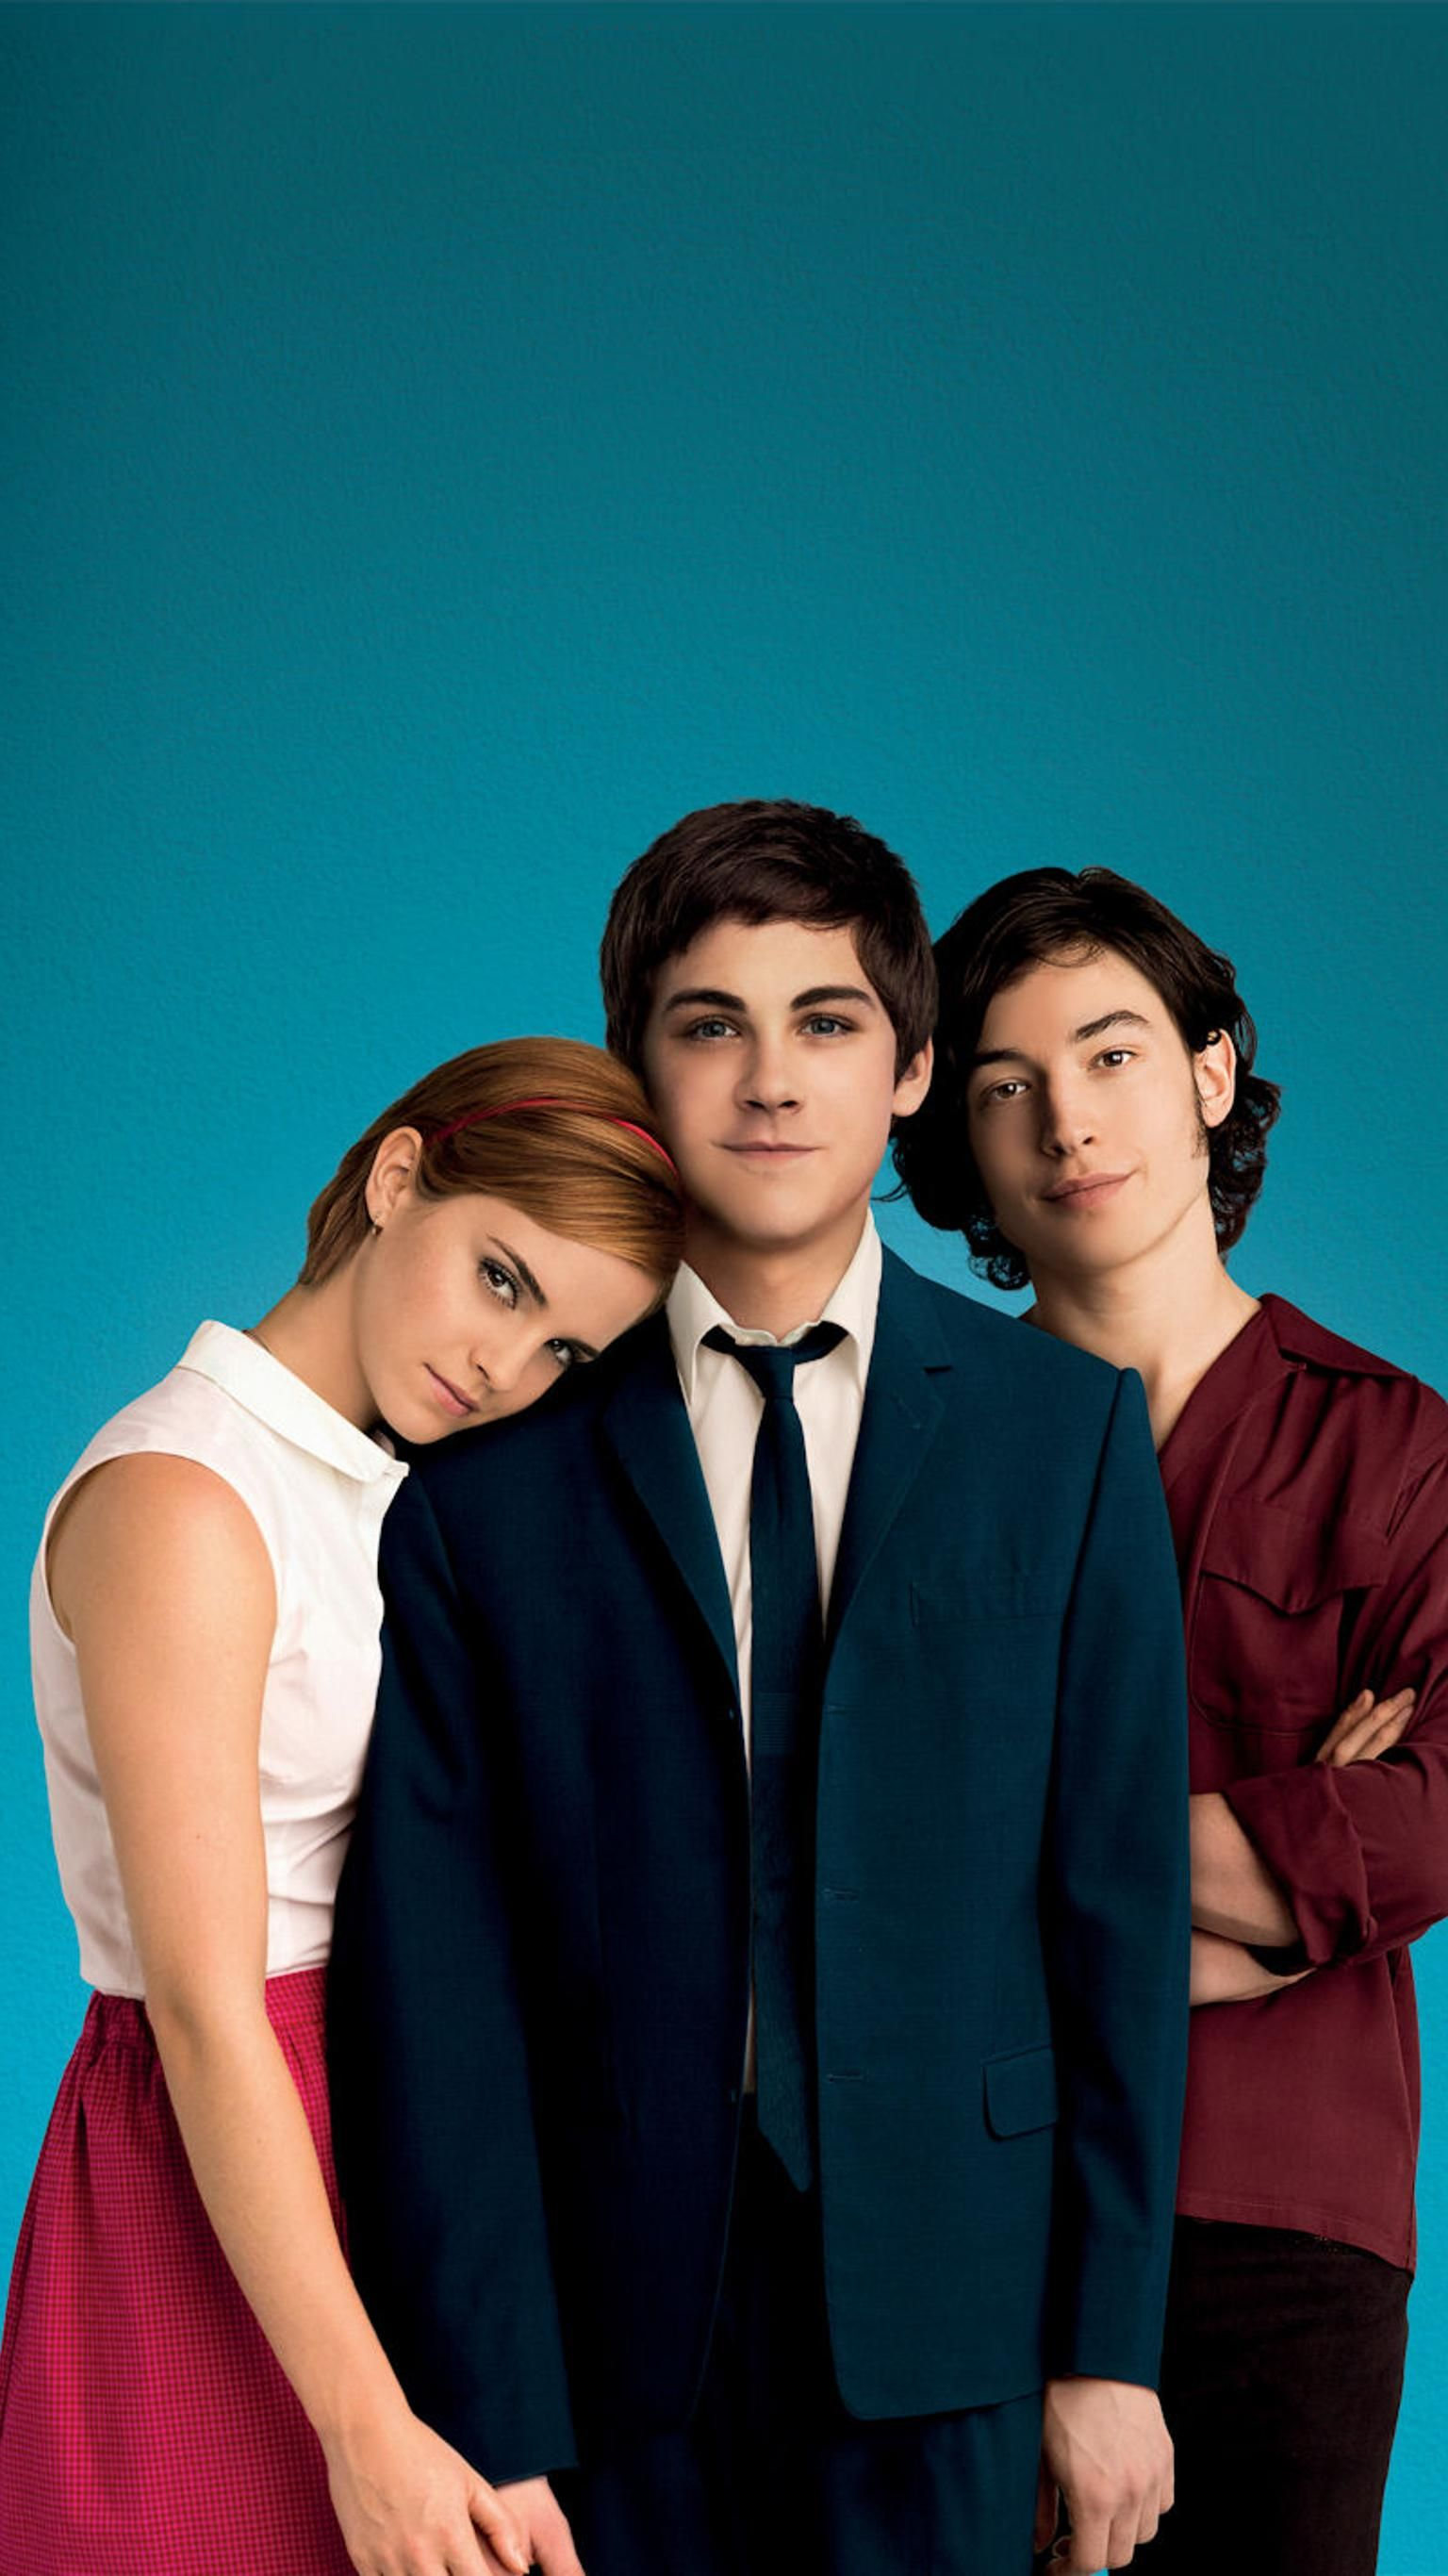 The Perks of Being a Wallflower 2012 Phone Wallpaper in 2020 1536x2732